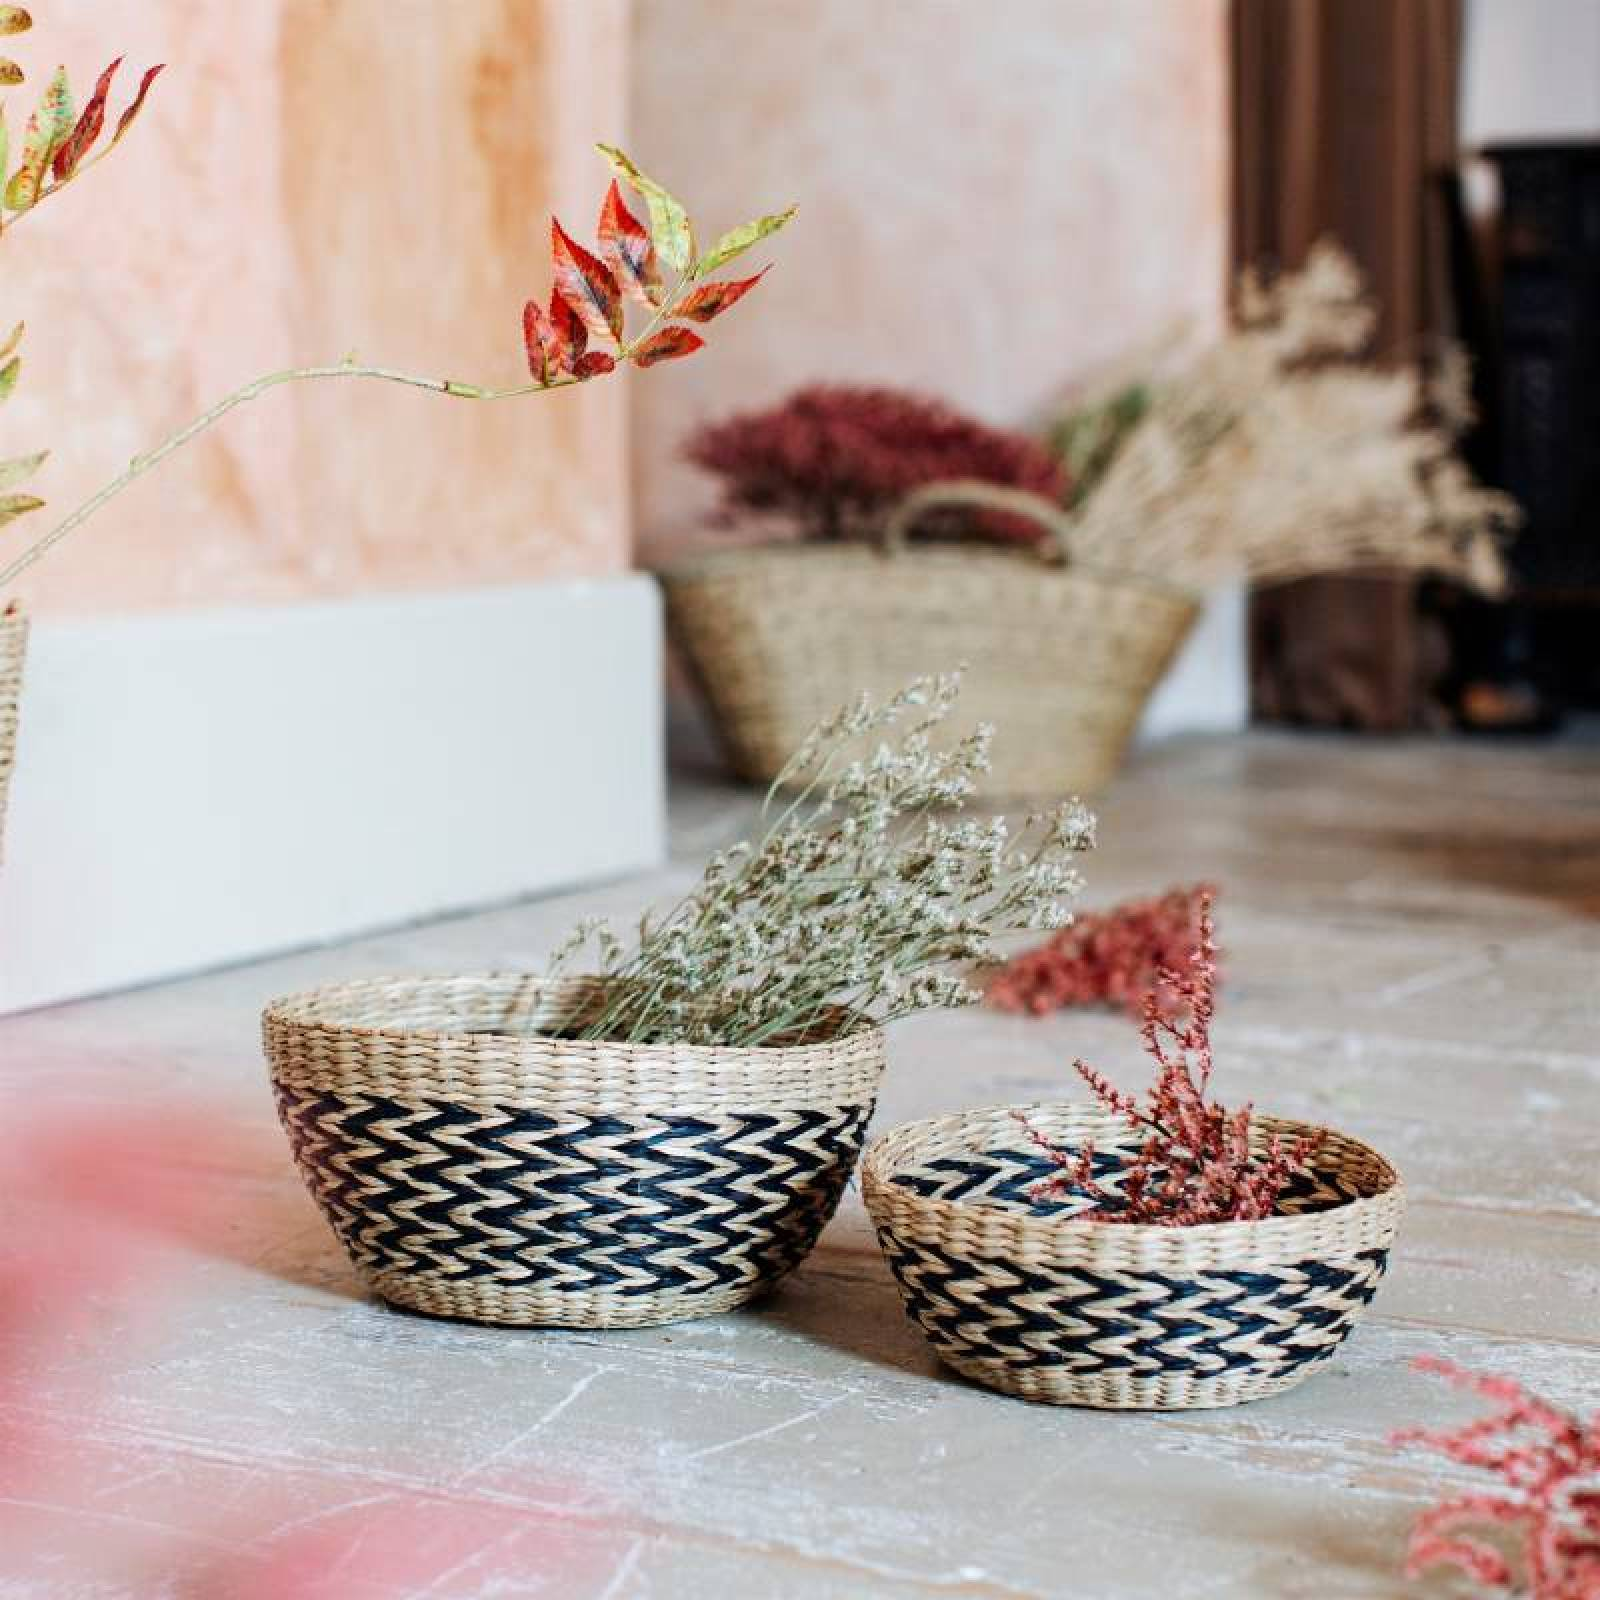 Set Of 2 Woven Seagrass Chevron Patterned Bowls thumbnails